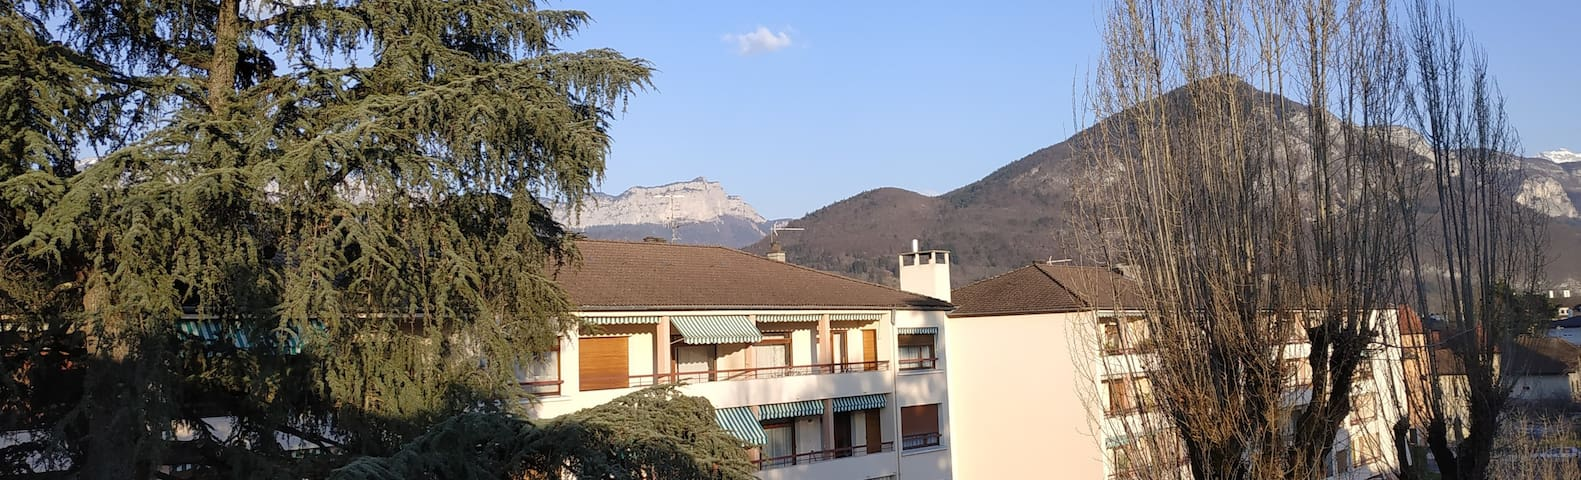 Appartement confort / grand balcon / vue montagnes